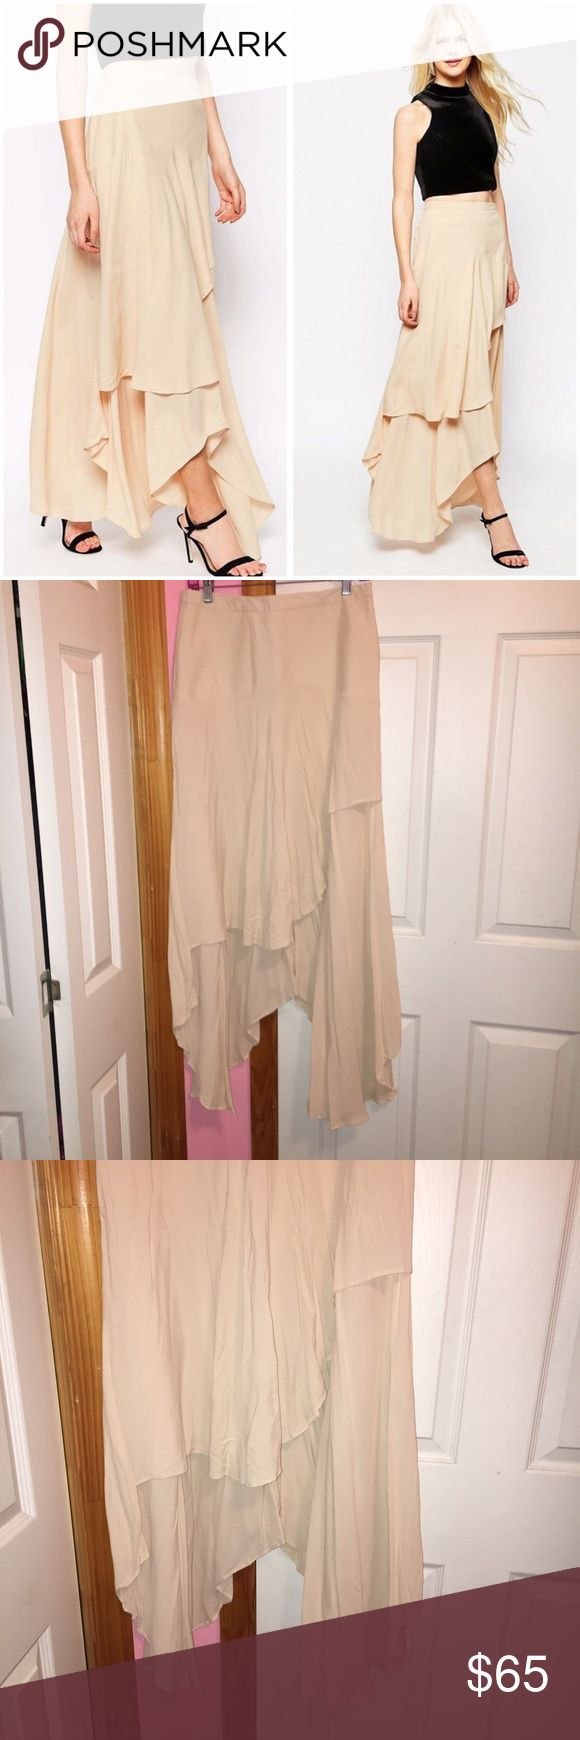 ASOS Floaty Maxi Skirt with Layers Only tried on. Has been washed. Color is nude. Does have a cease in the skirt as seen in the photos. Woven crepe. Unlined. Side zip. 100% viscose. Stock photos from ASOS. ❌NO TRADES❌ ASOS Skirts Maxi